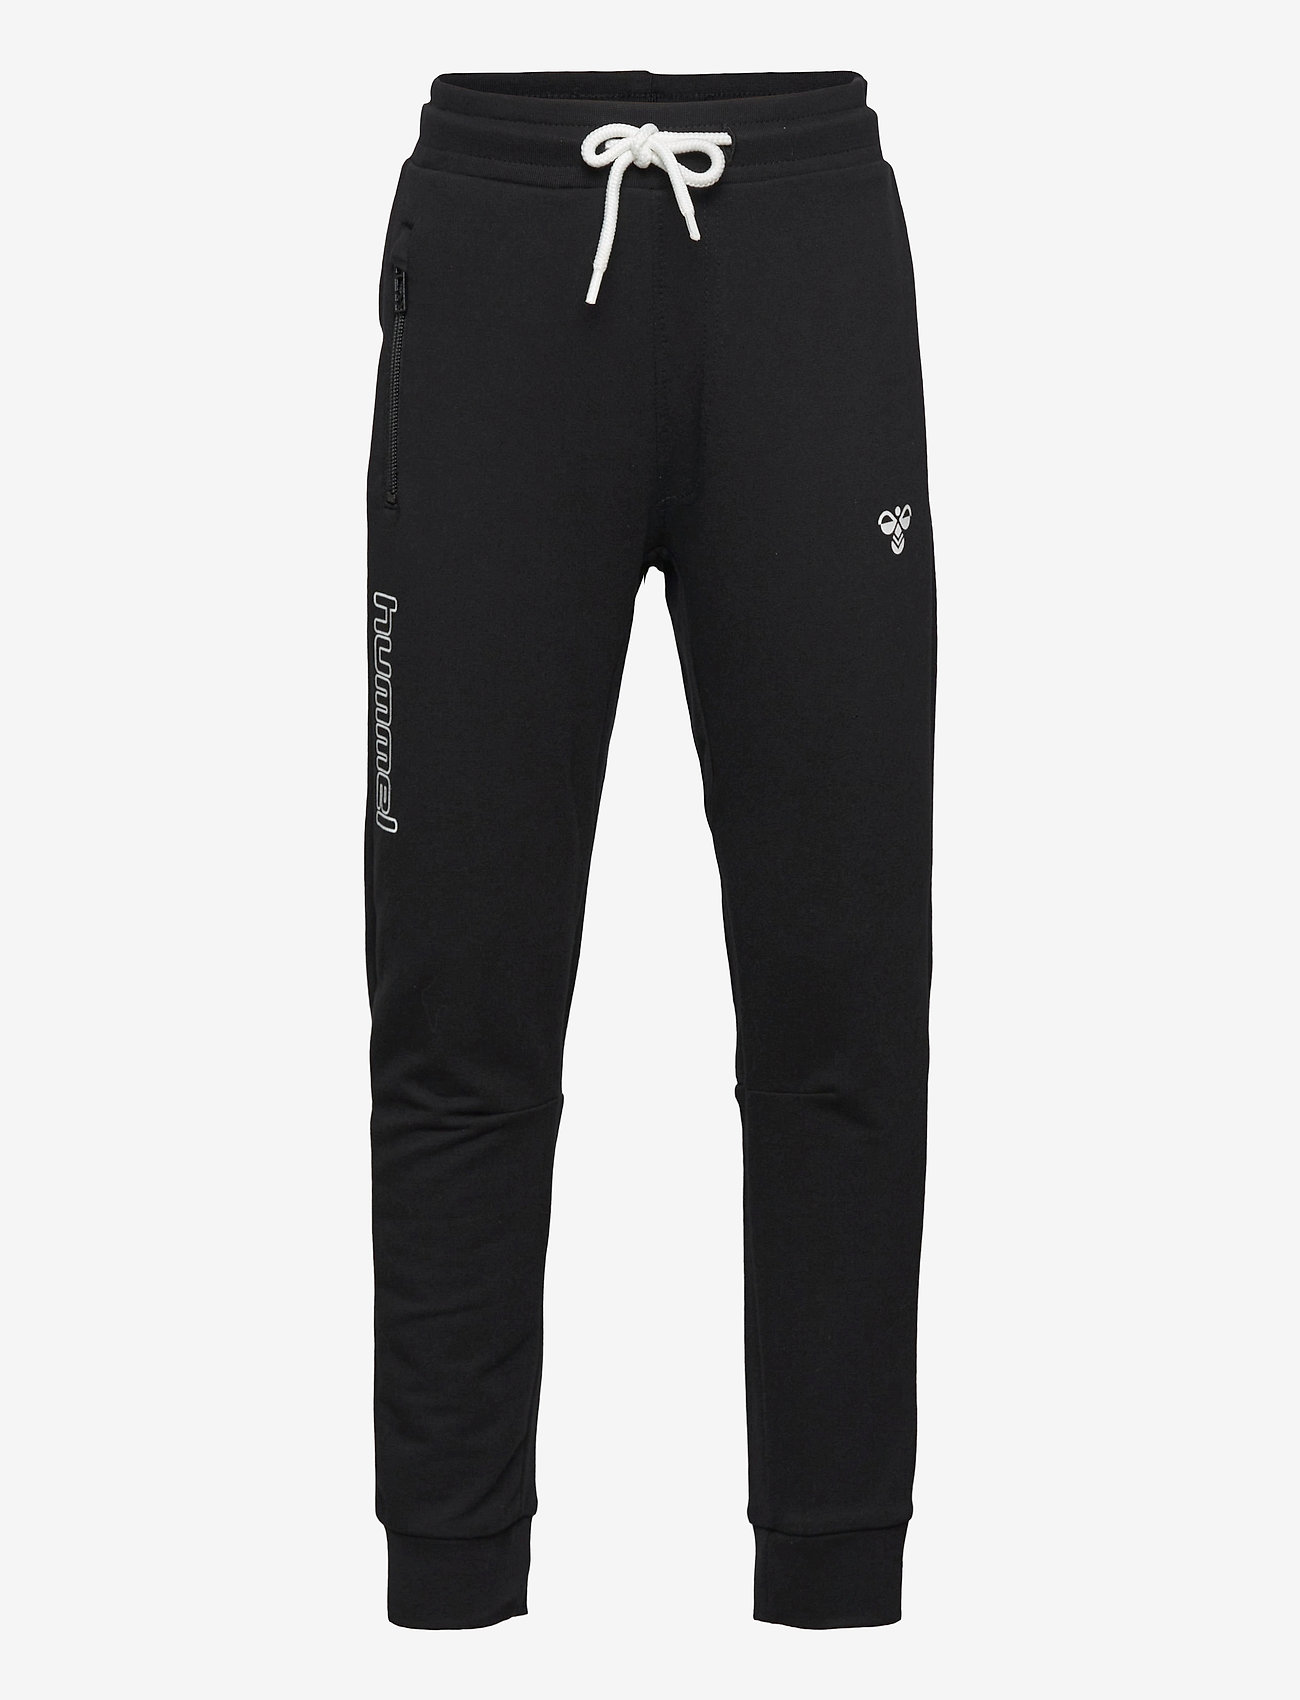 Hummel - hmlOCHO PANTS - sweatpants - black - 0